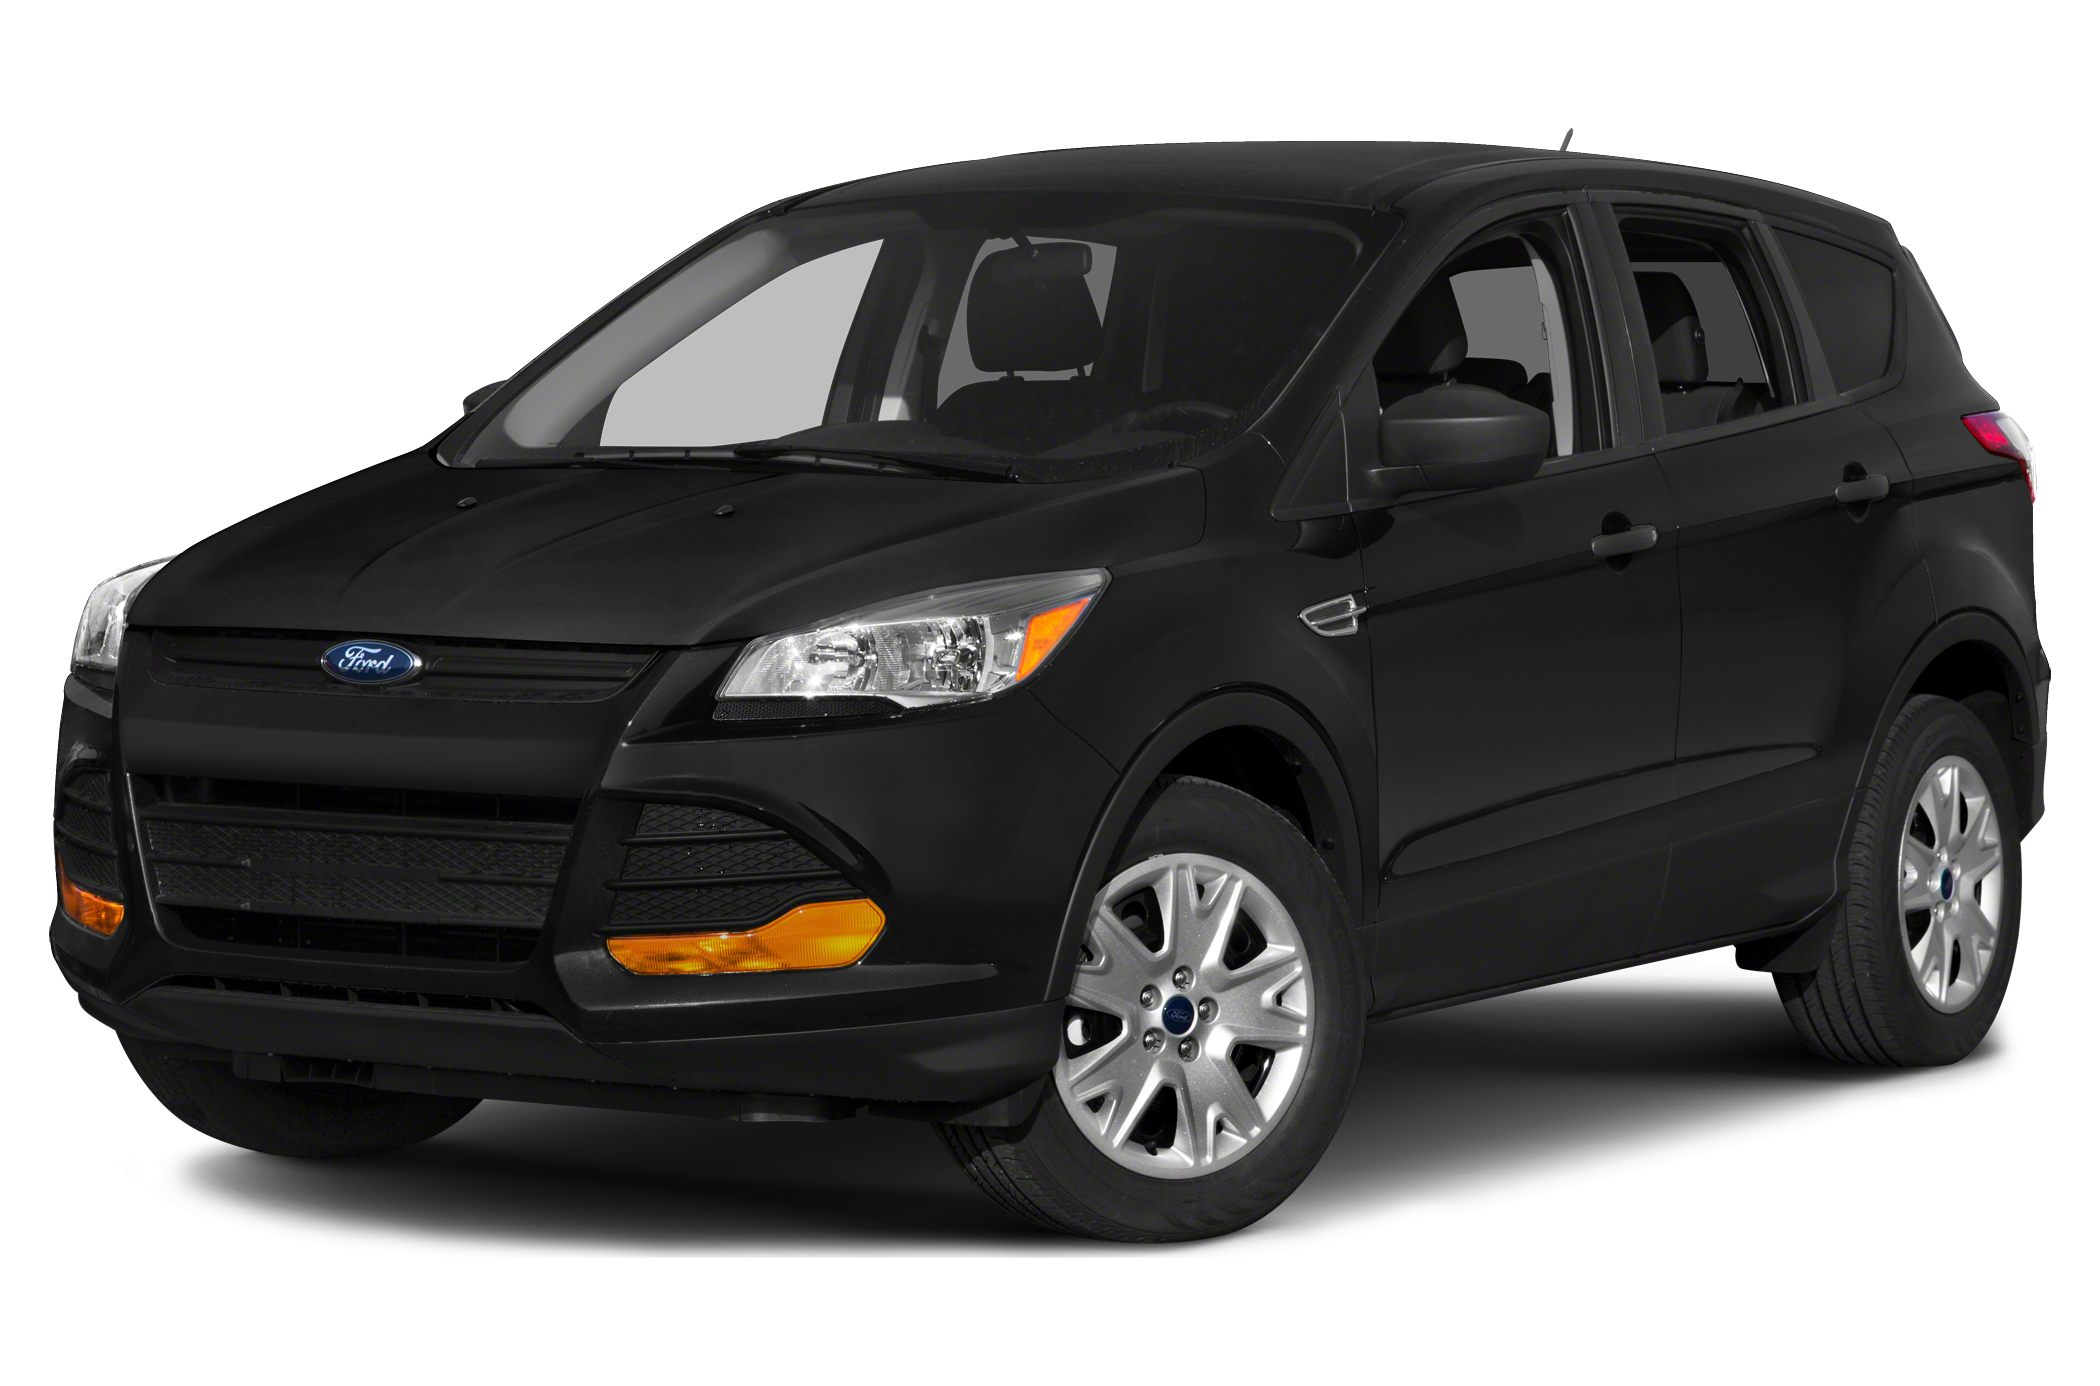 2015 Ford Escape Titanium SUV for sale in Vinita for $33,535 with 0 miles